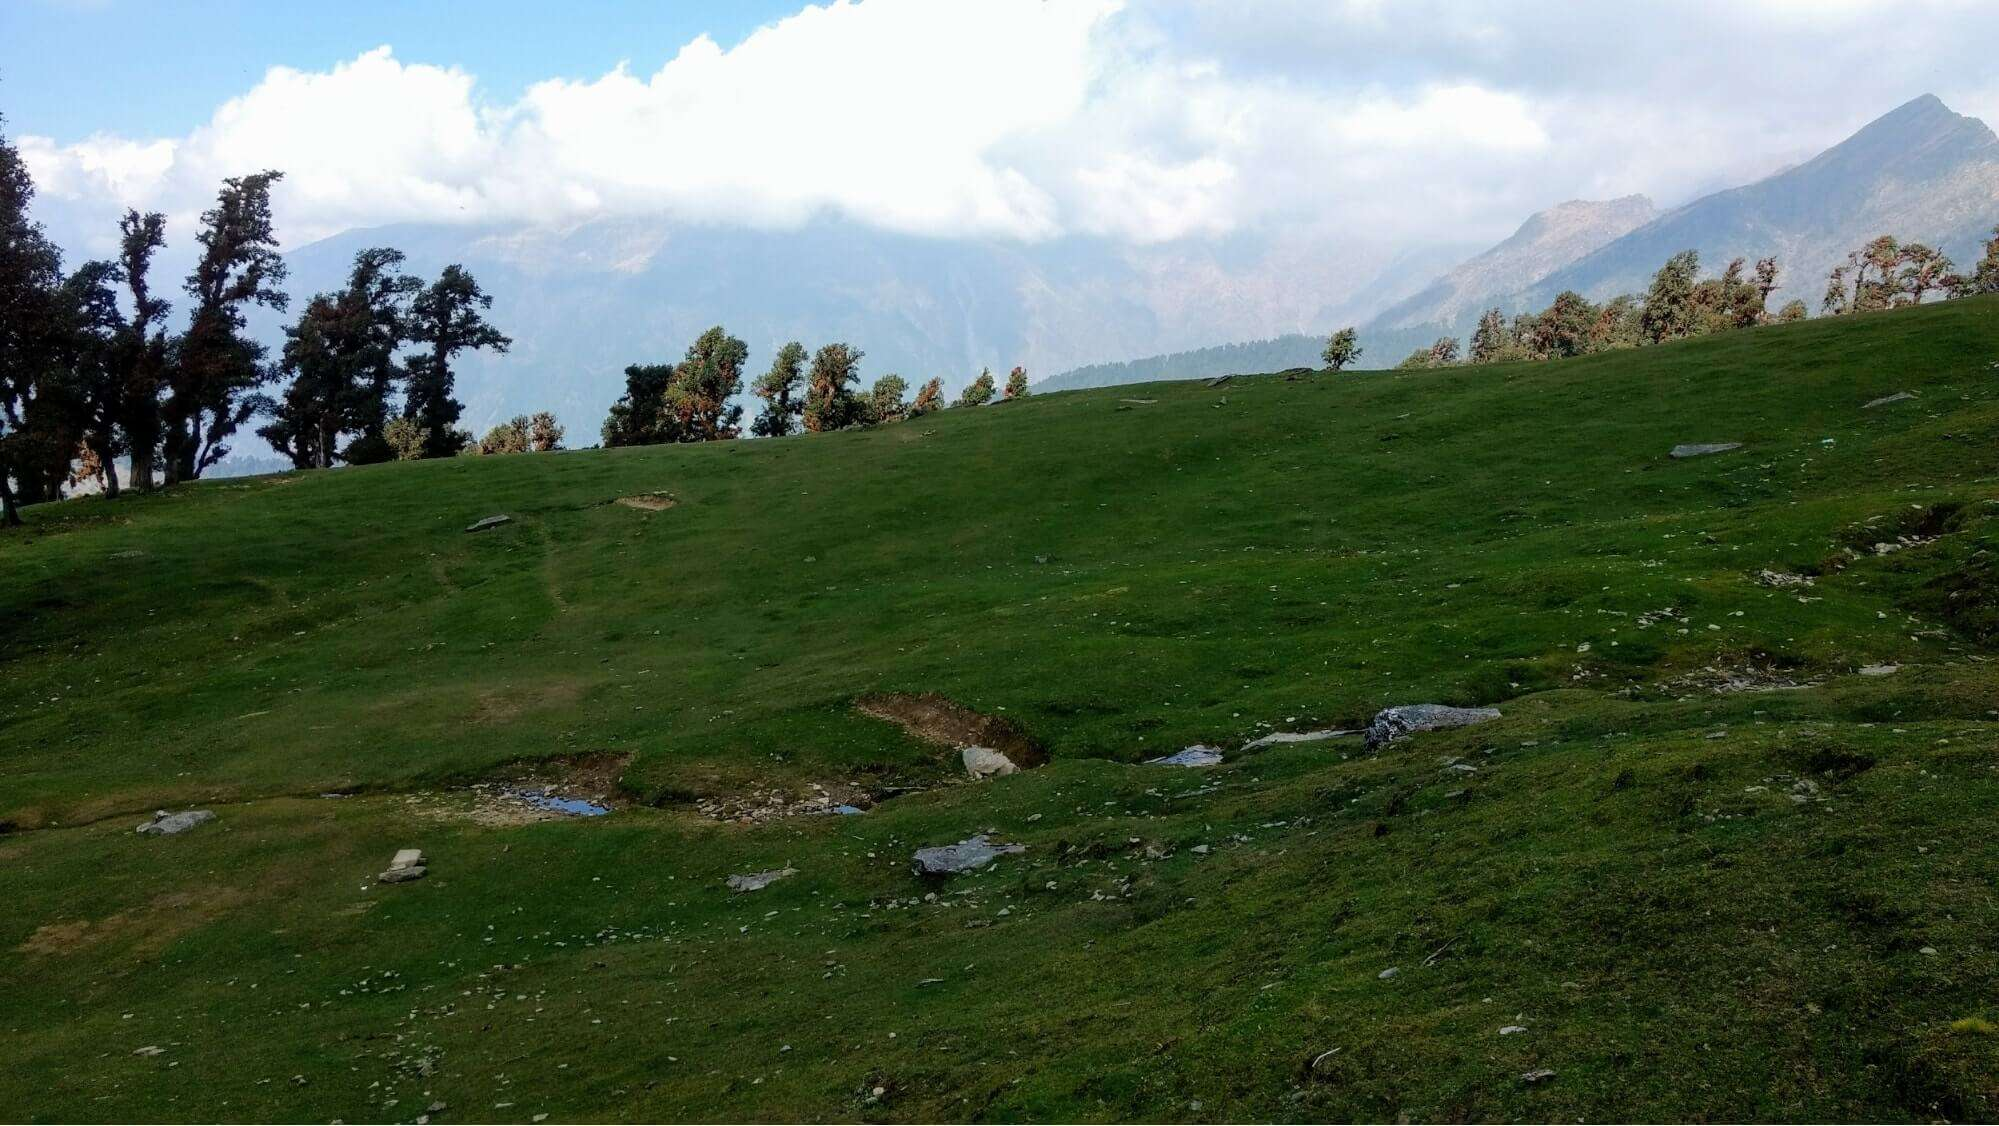 a beautiful green meadow in the mountains